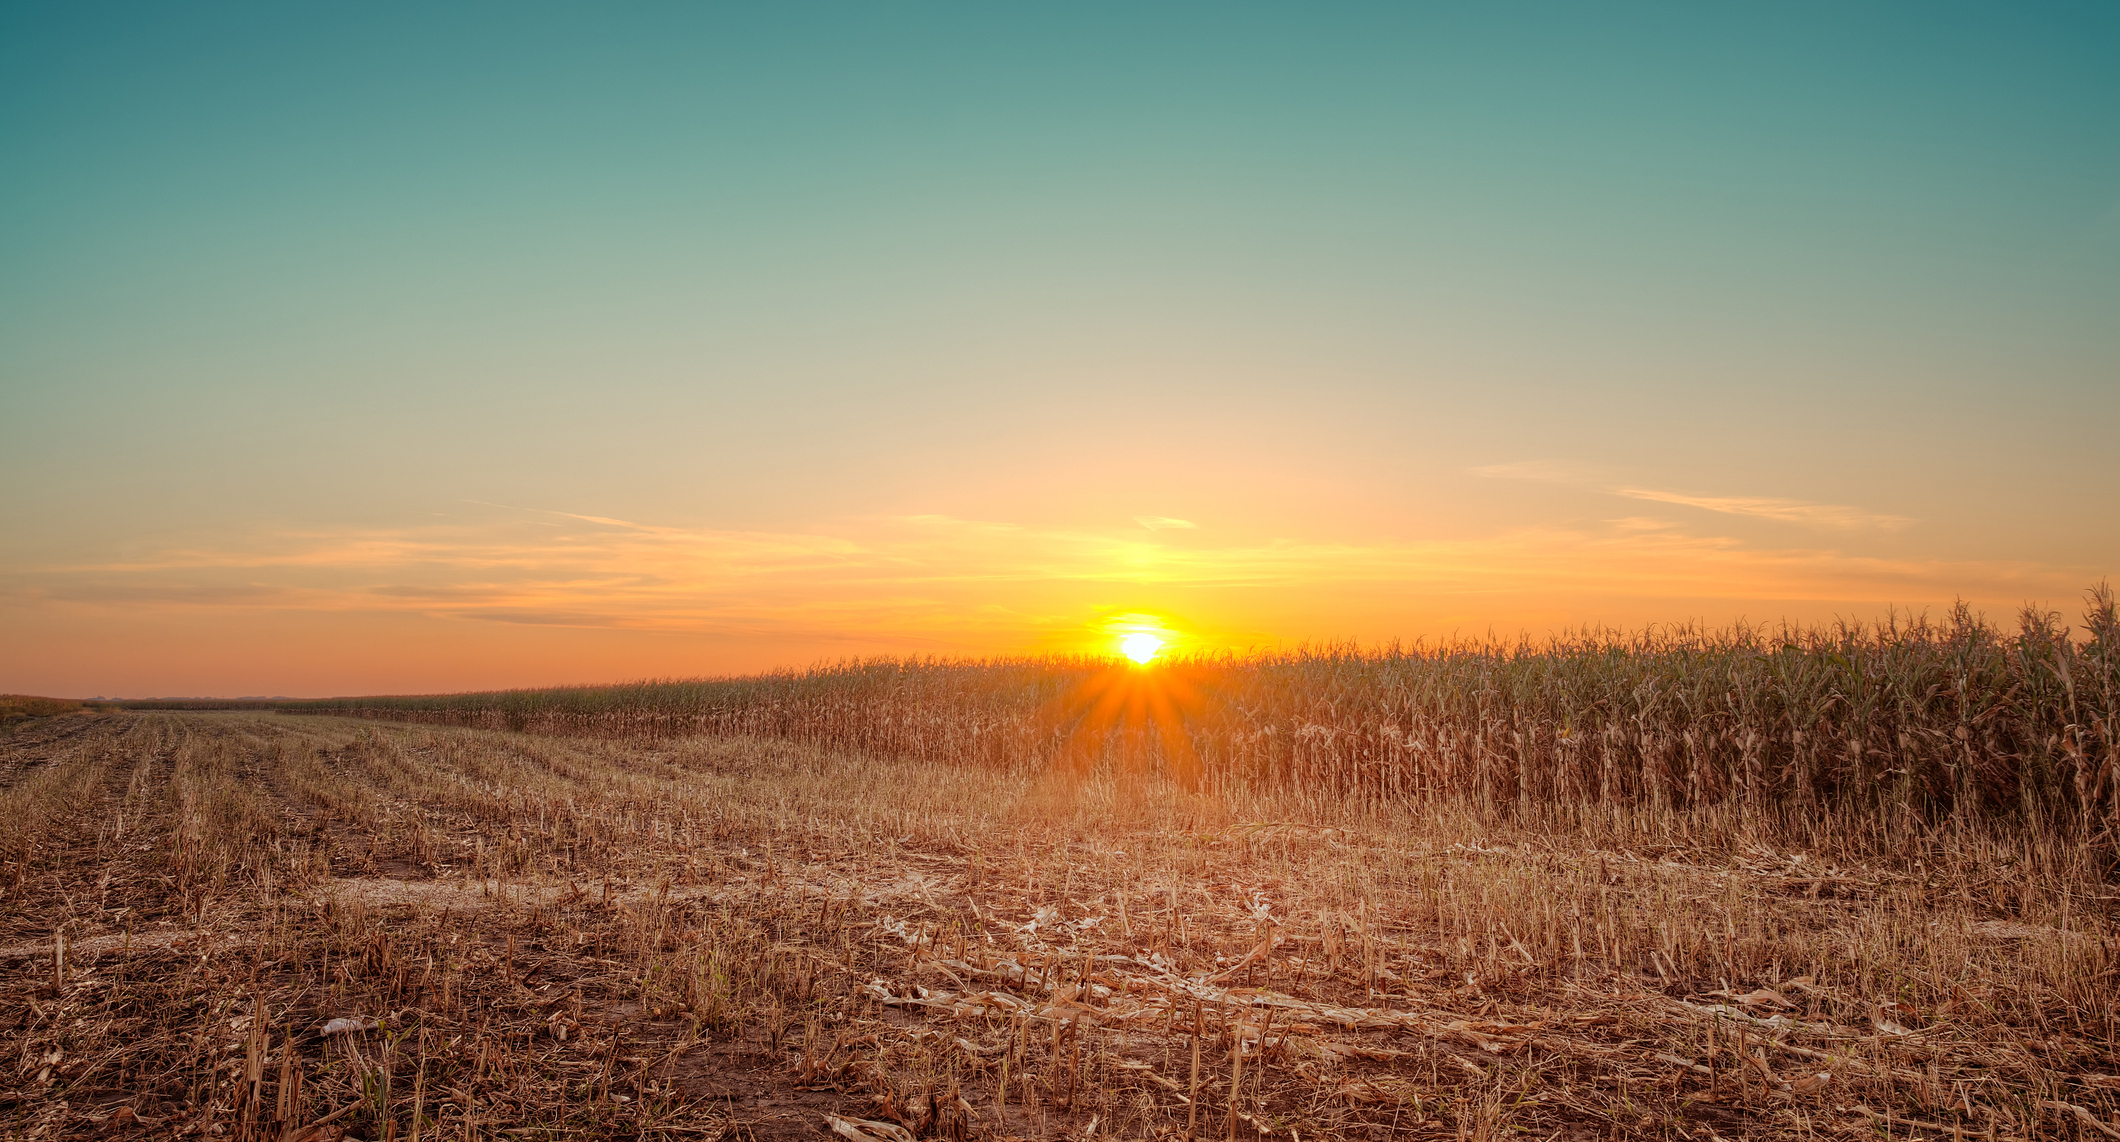 Sunset over a cornfield during harvesting